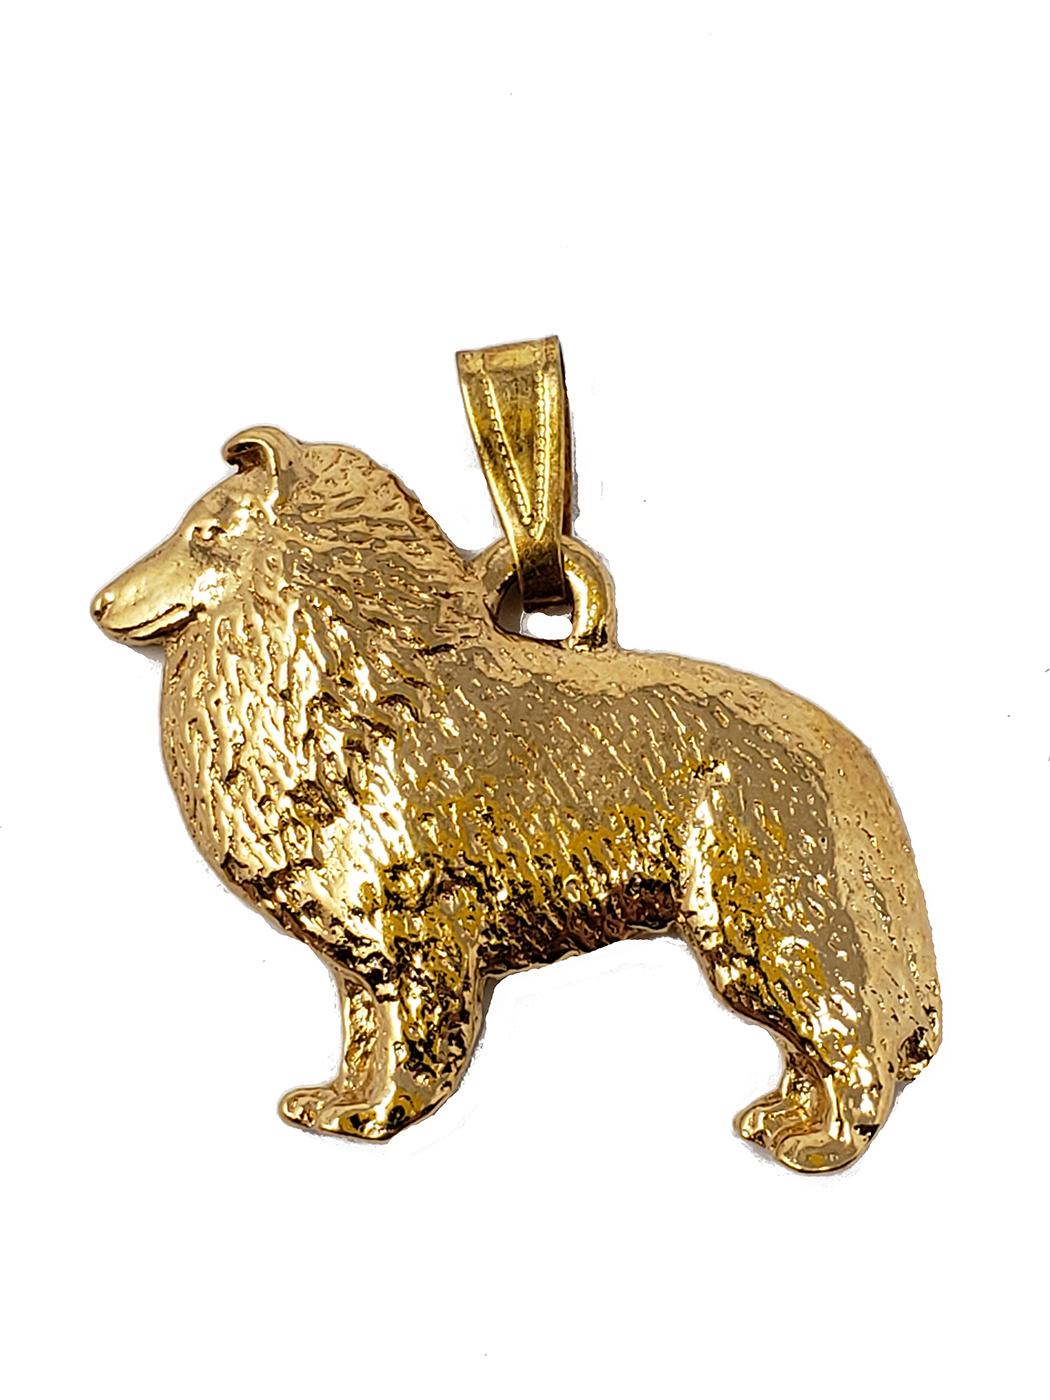 Shetland Sheepdog 24K Gold Plated Pendant